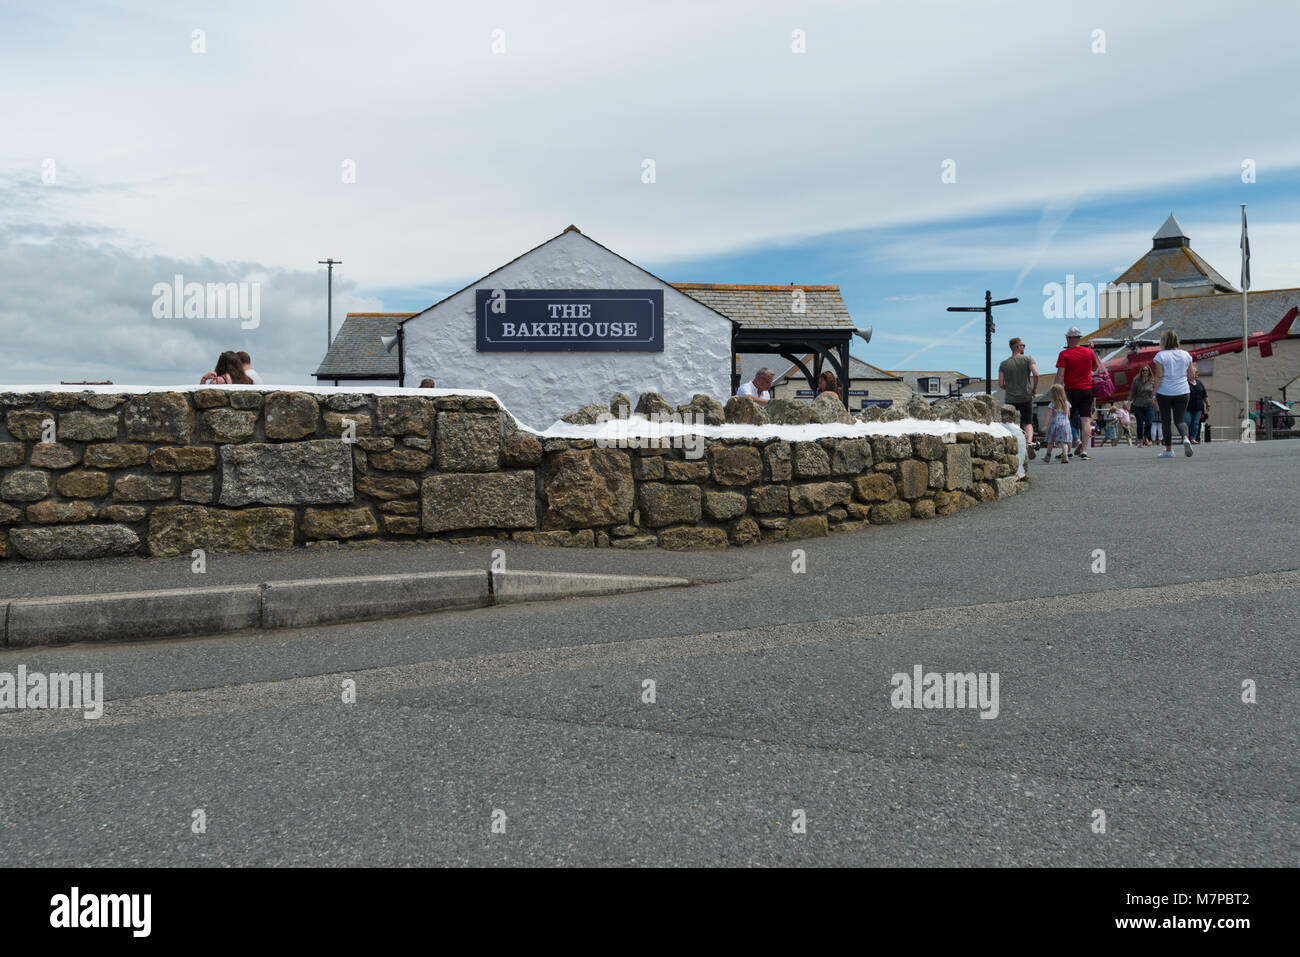 The Bakehouse, Land's End, Cornwall - Stock Image